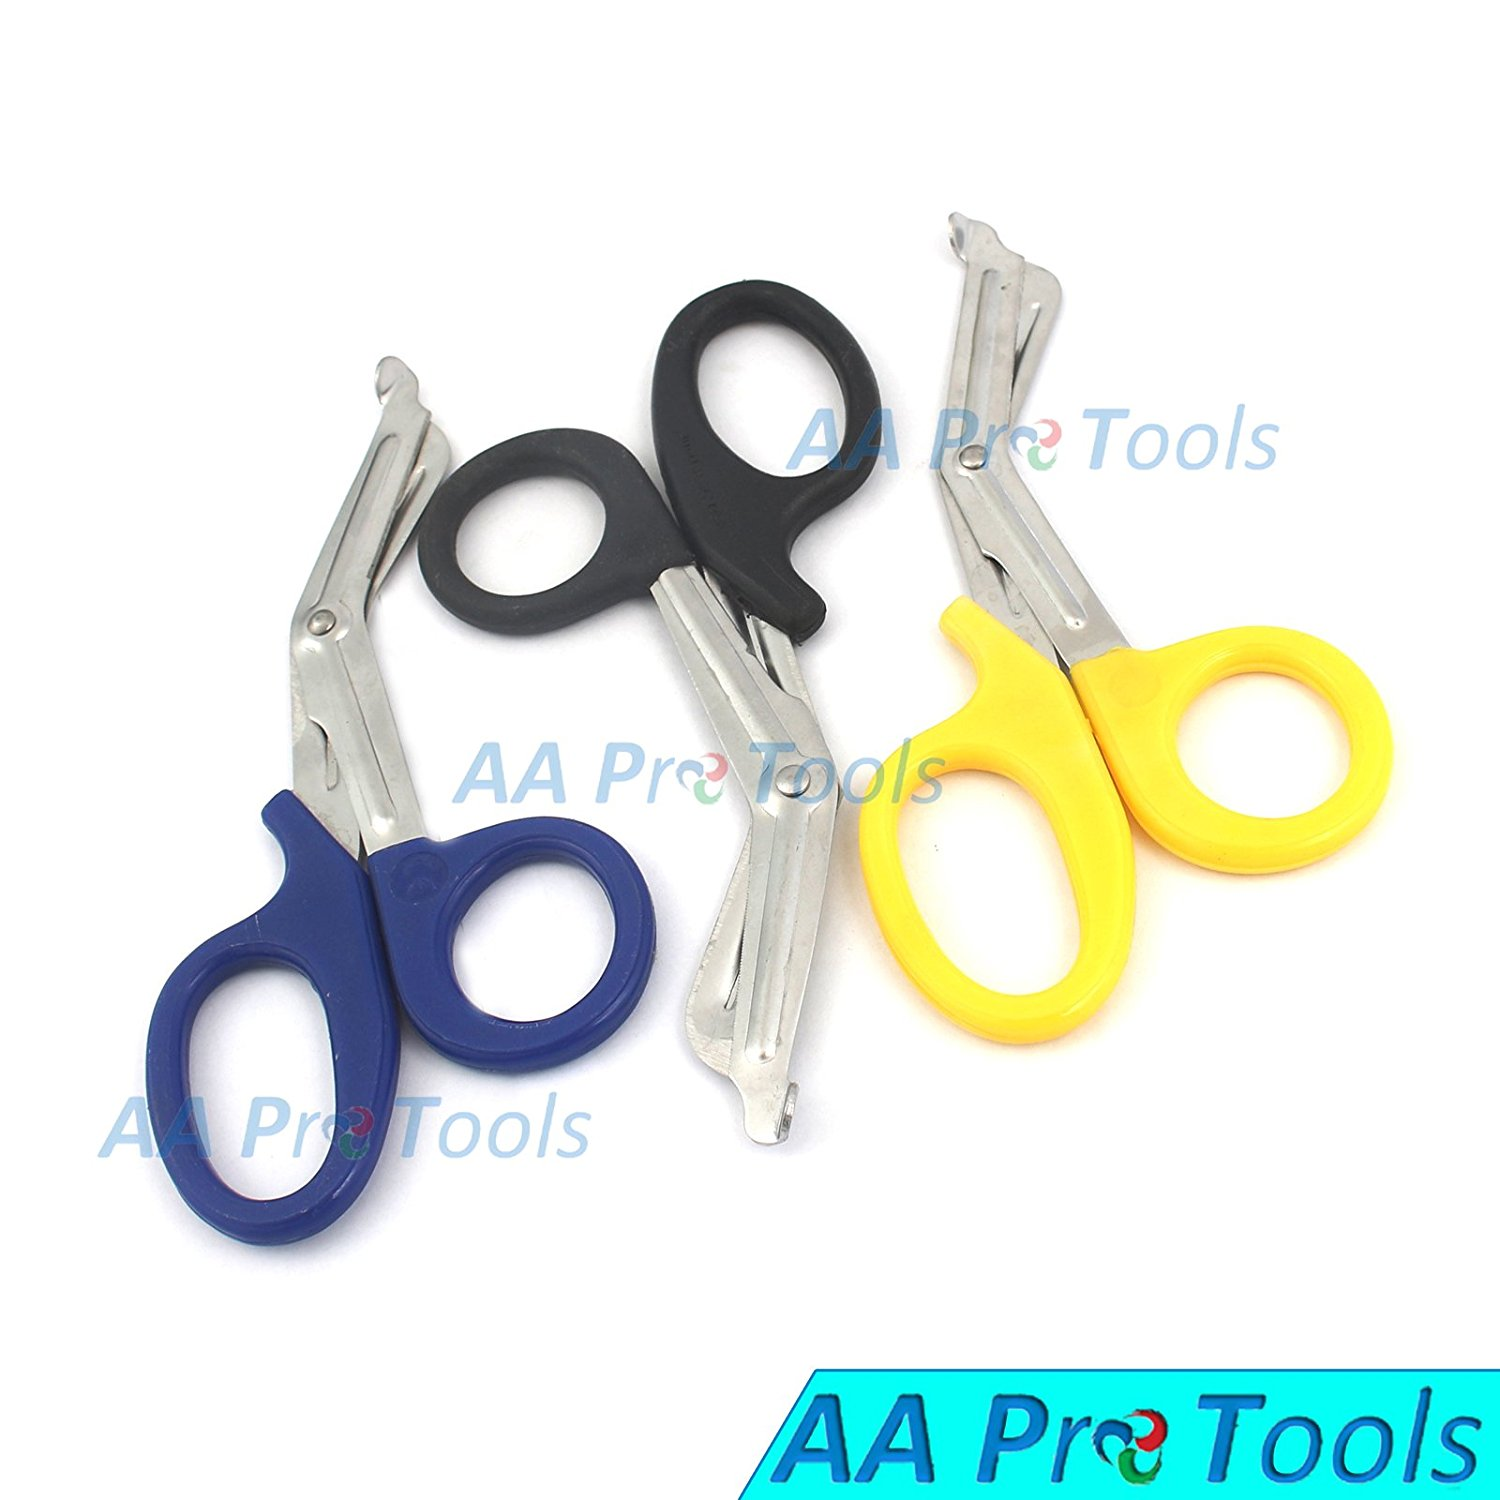 AAPROTOOLS ( BLACK & YELLOW & BLUE ) PARAMEDIC UTILITY BANDAGE TRAUMA EMT EMS SHEARS SCISSORS 7.25 INCH STAINLESS STEEL A+ QUALITY